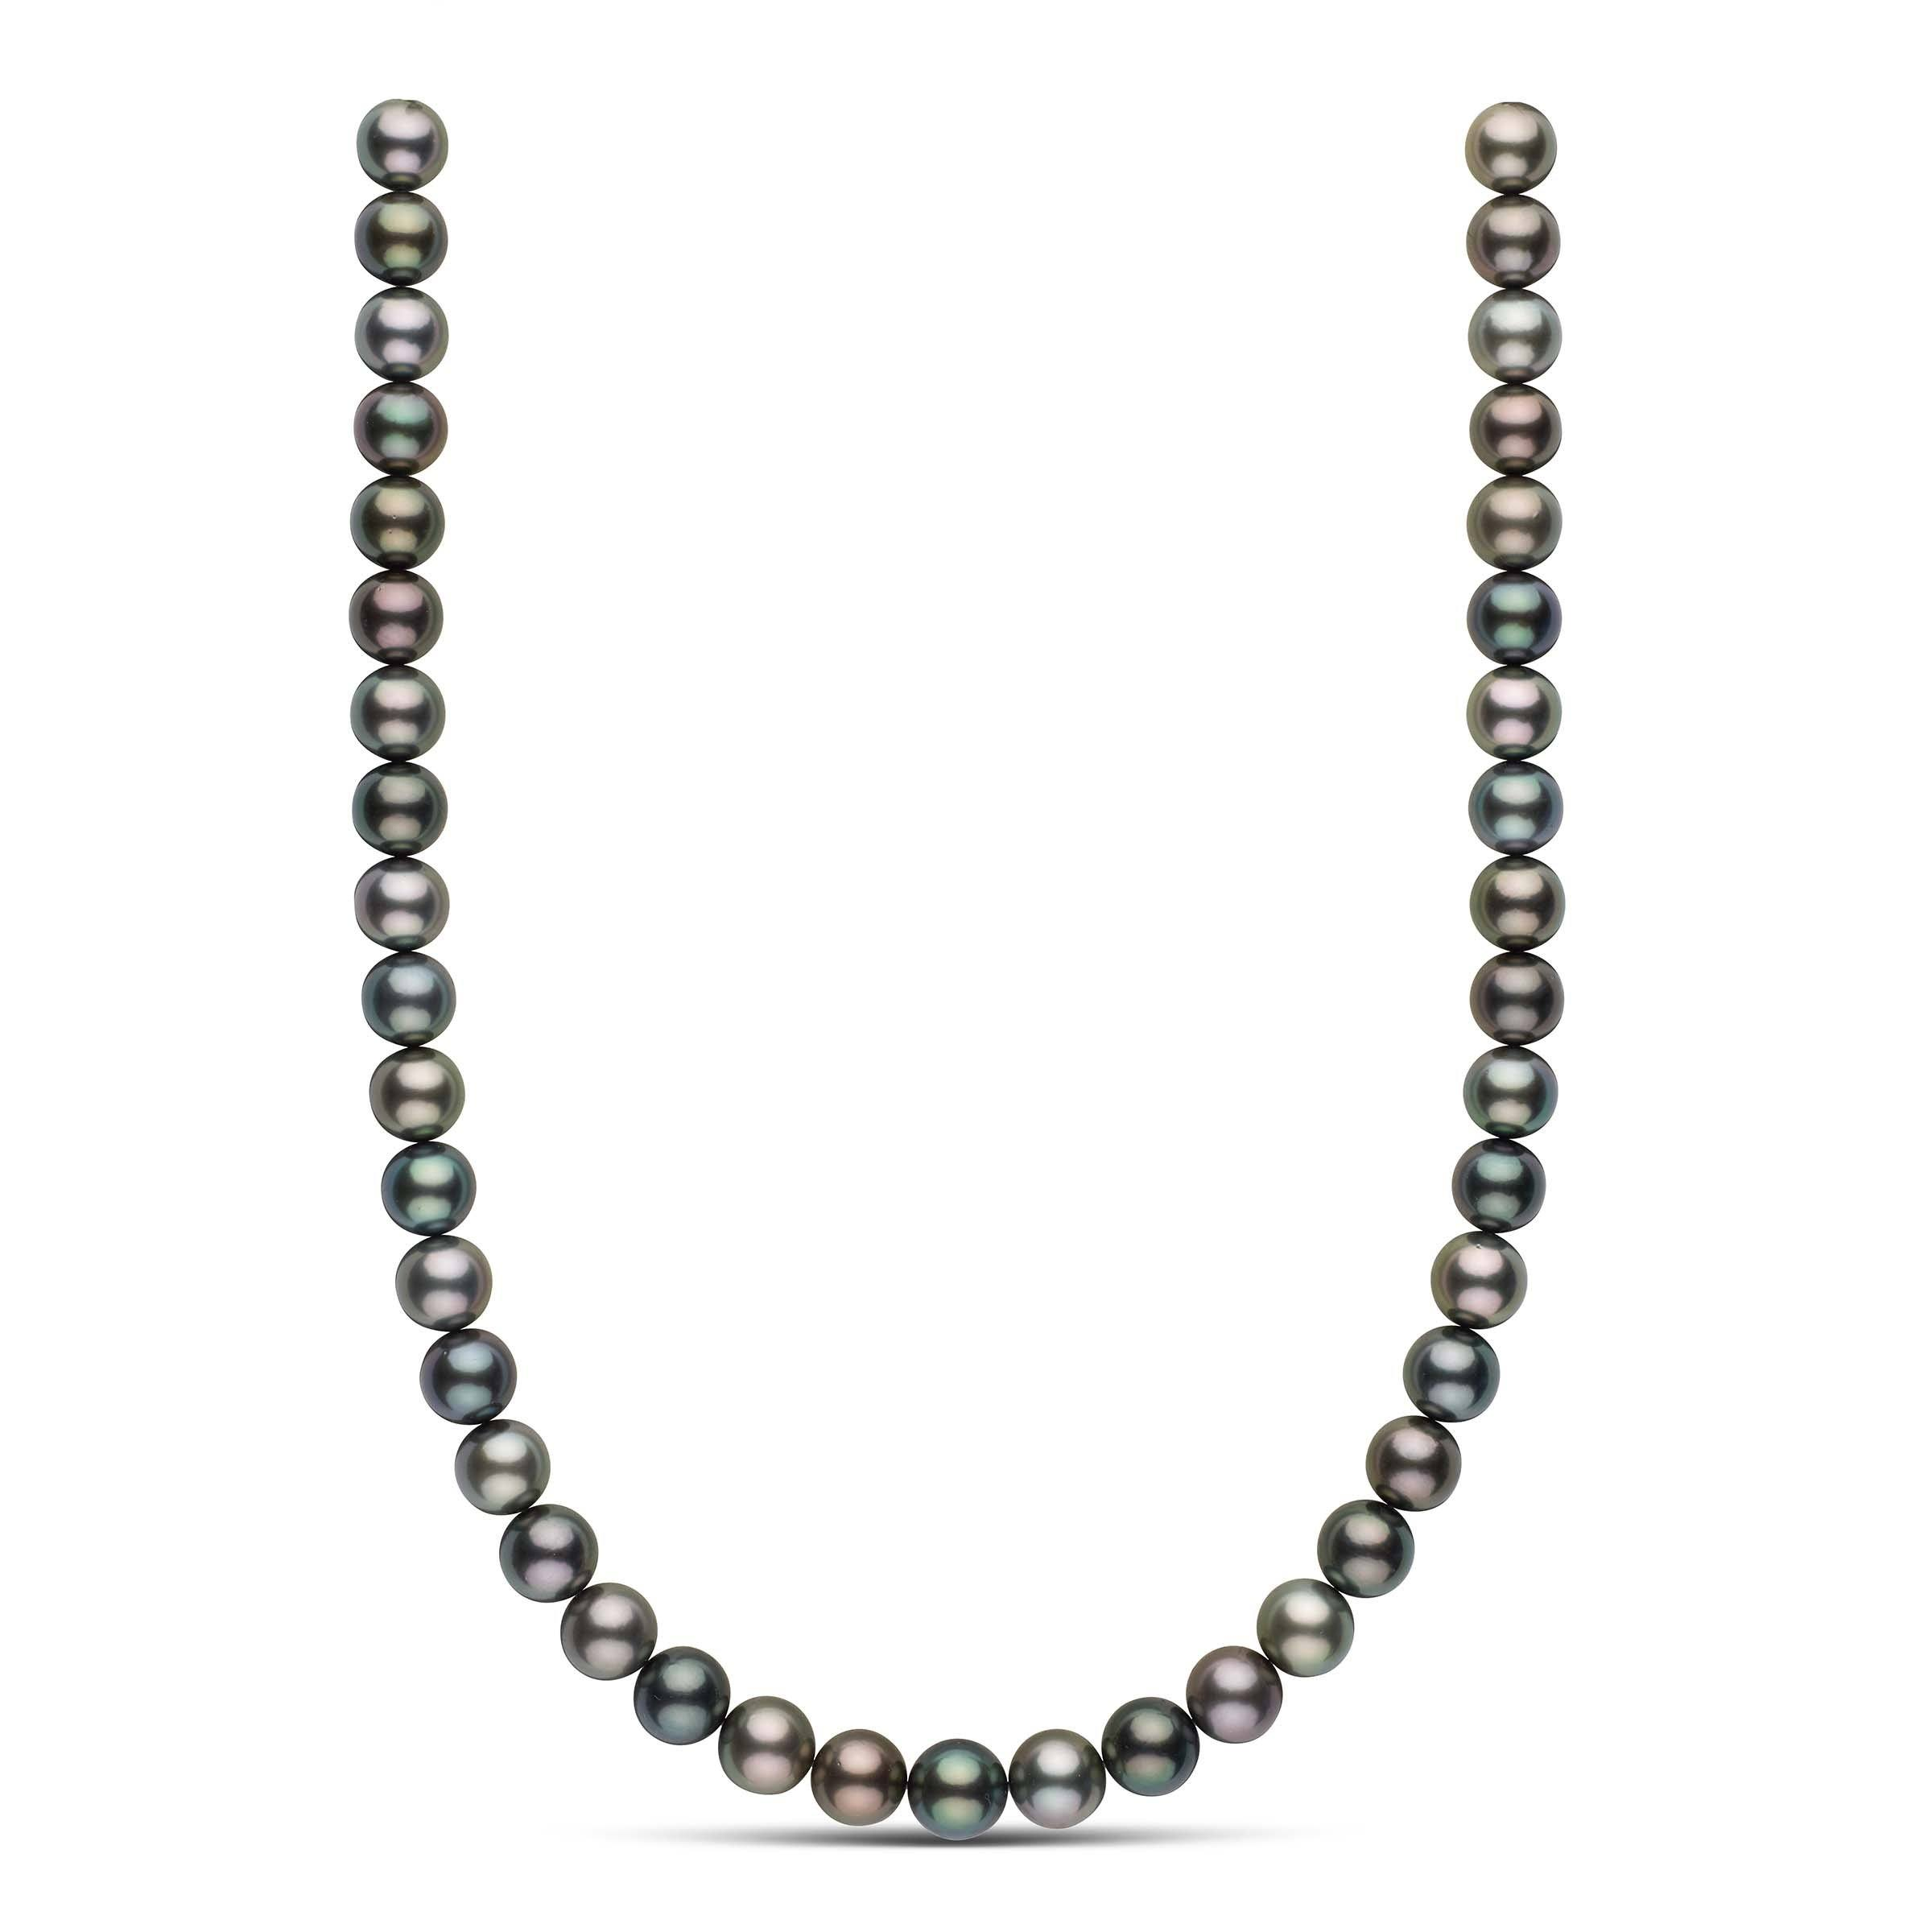 18-inch 10.0-10.8 mm AAA Round Multicolor Tahitian Pearl Necklace